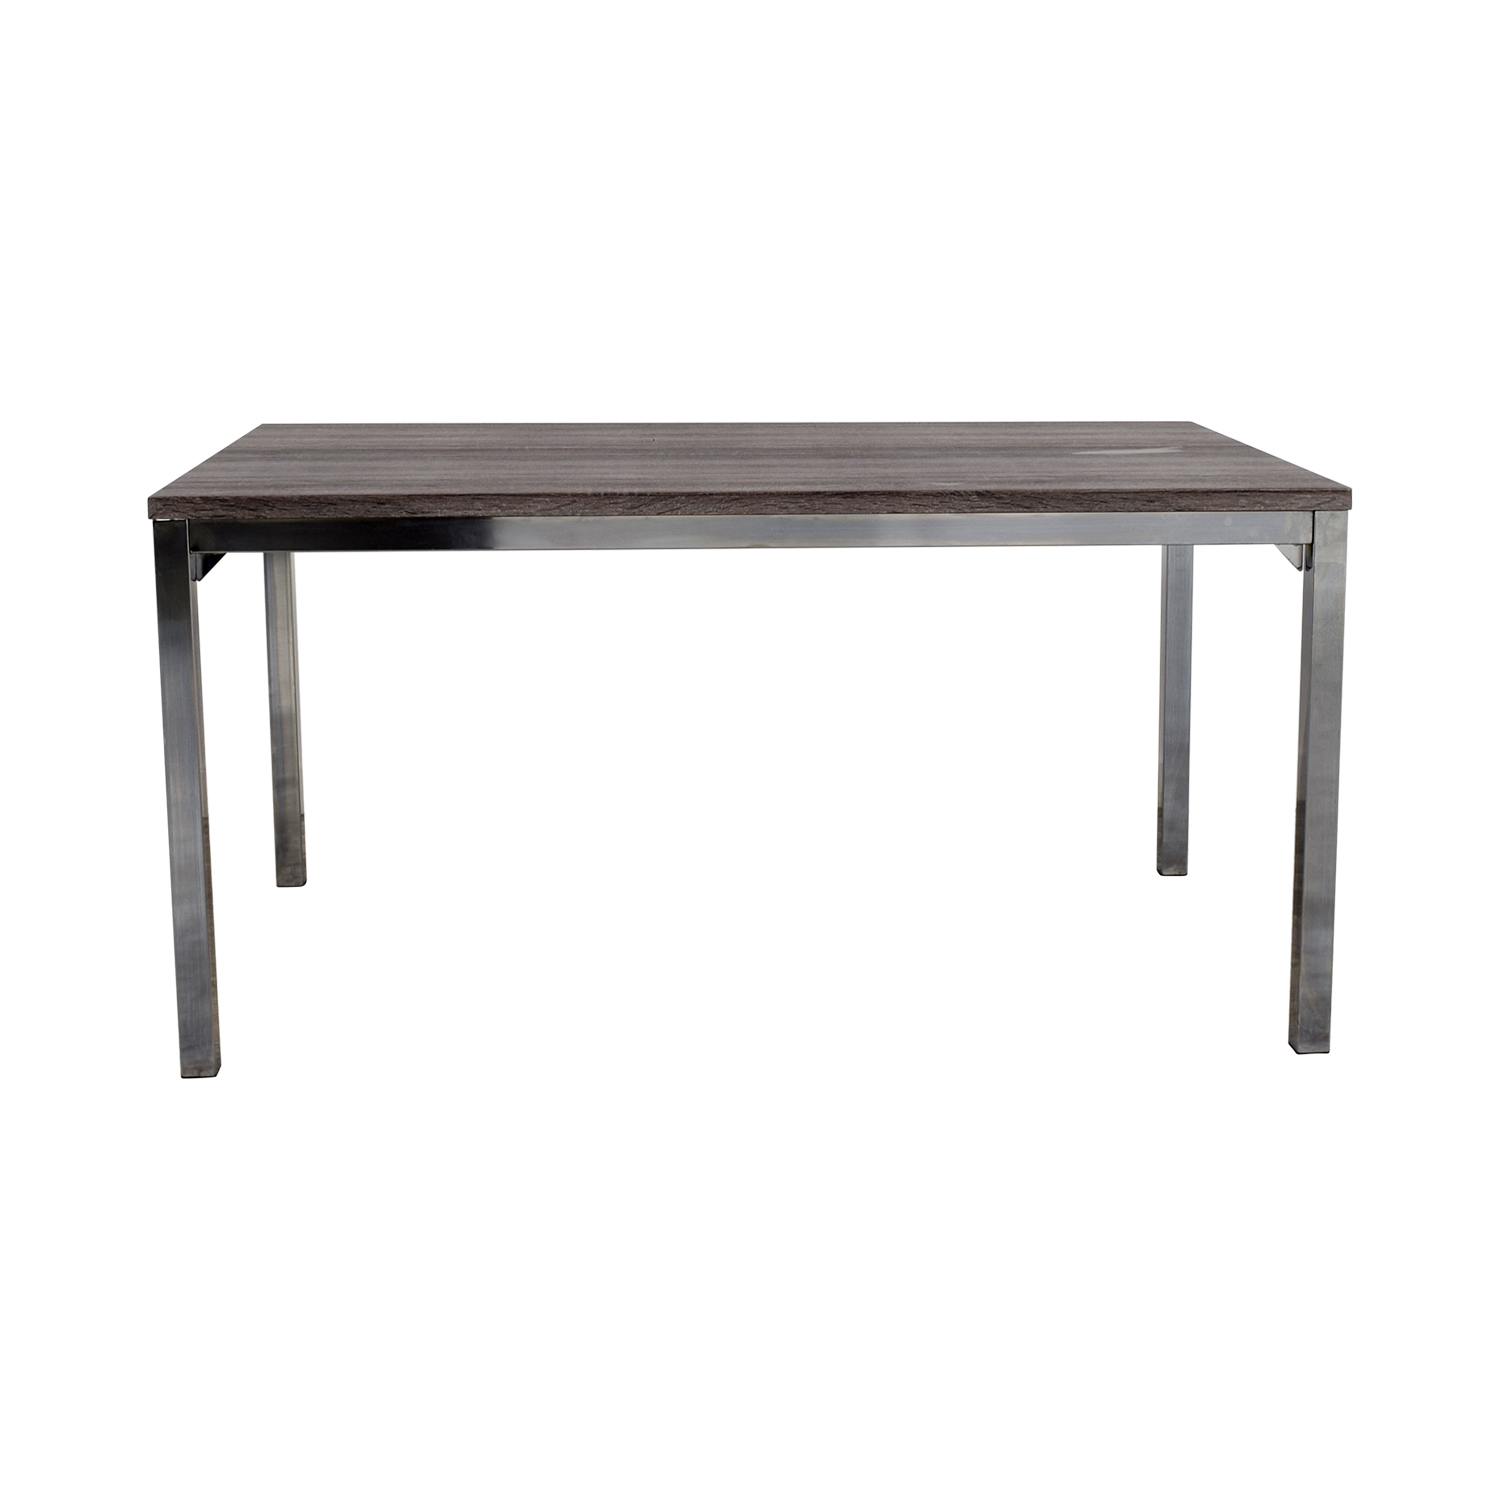 Shop Wildon Home Rustic Wood Top And Chrome Dining Table Wildon Home Tables  ...